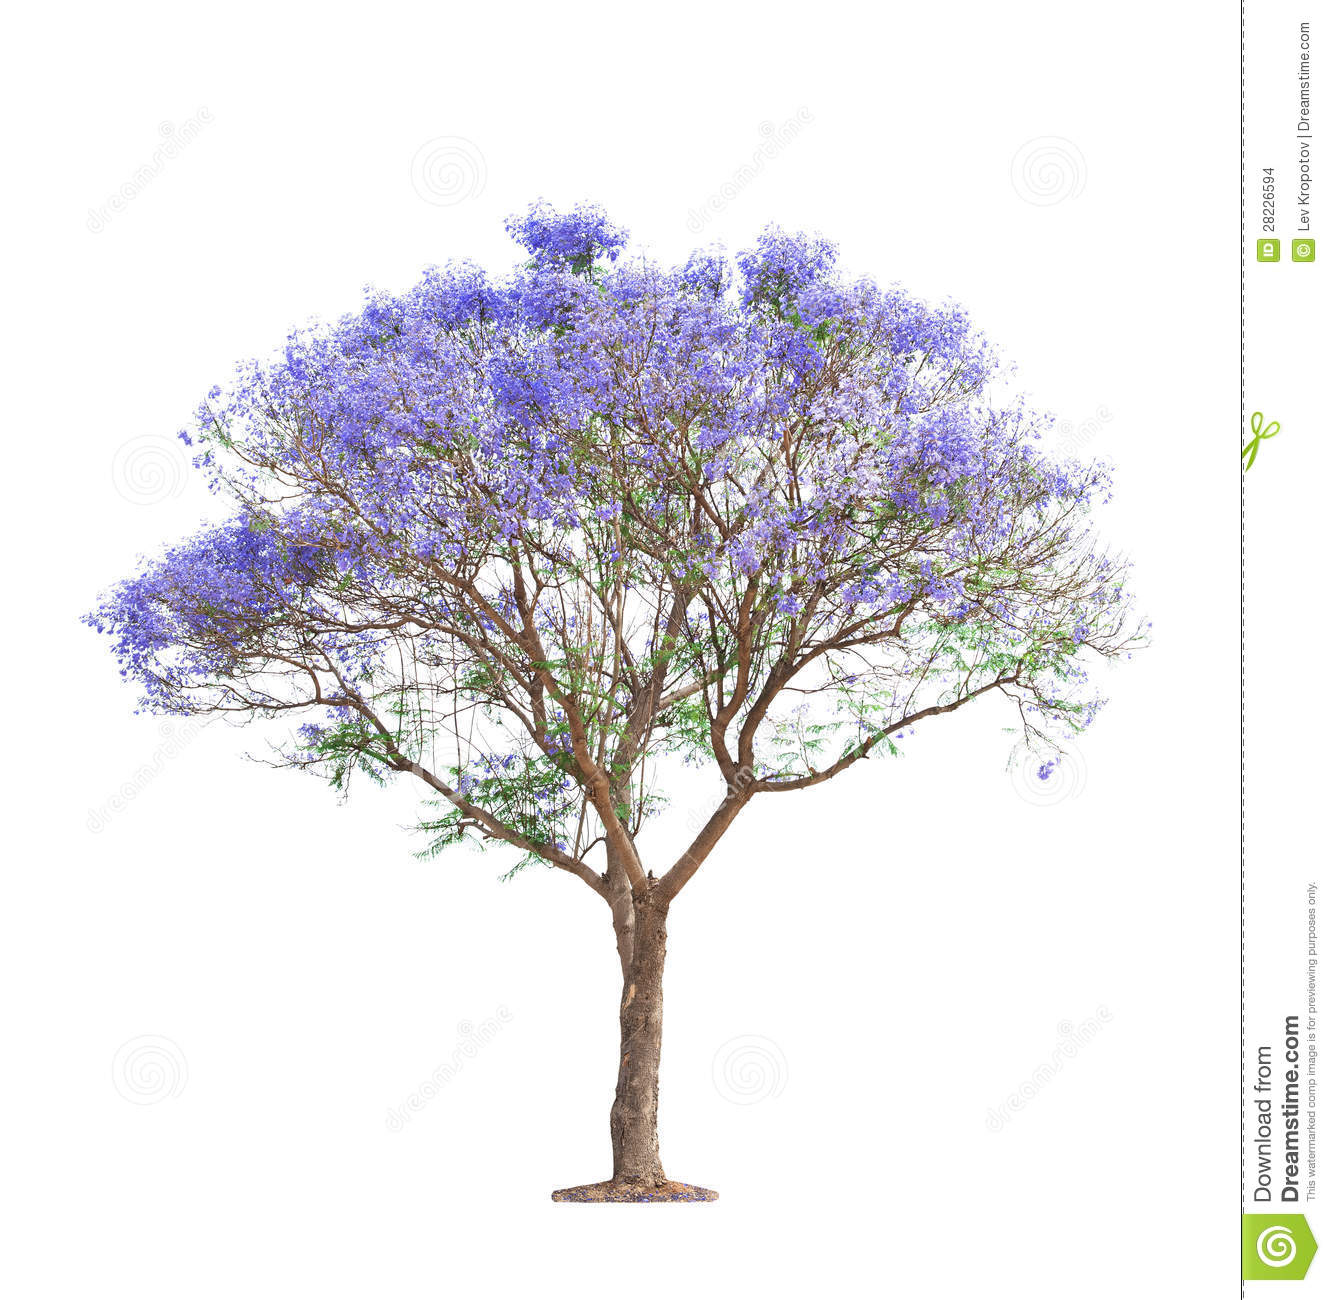 Beautiful Blooming Jacaranda Tree Stock Images - Image: 28226594